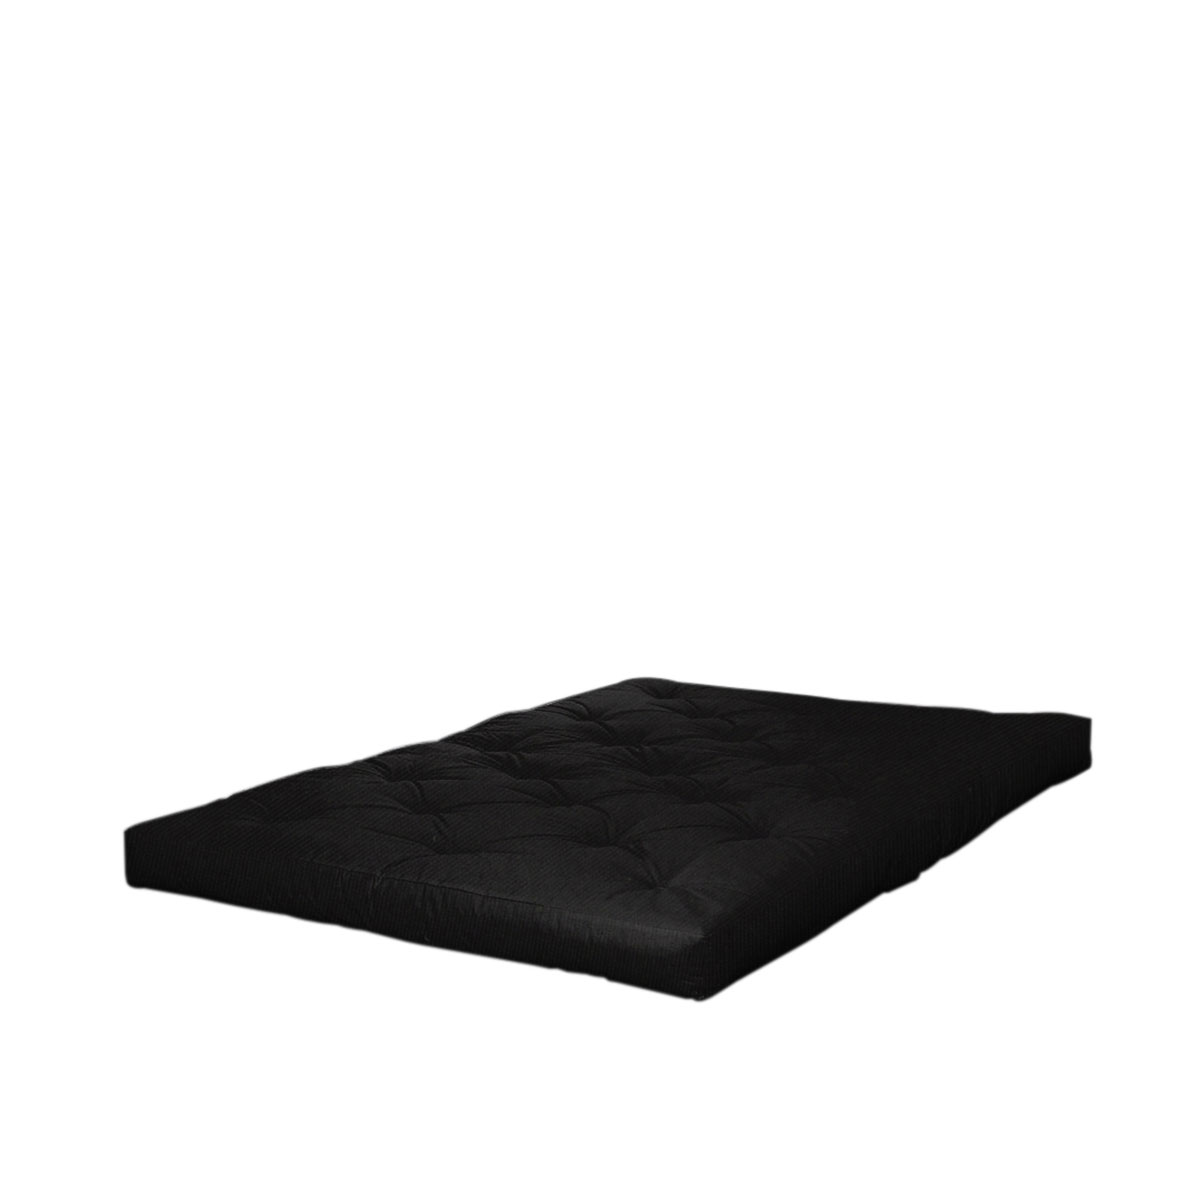 KARUP DESIGN Futon matrace Basic 80 – Black